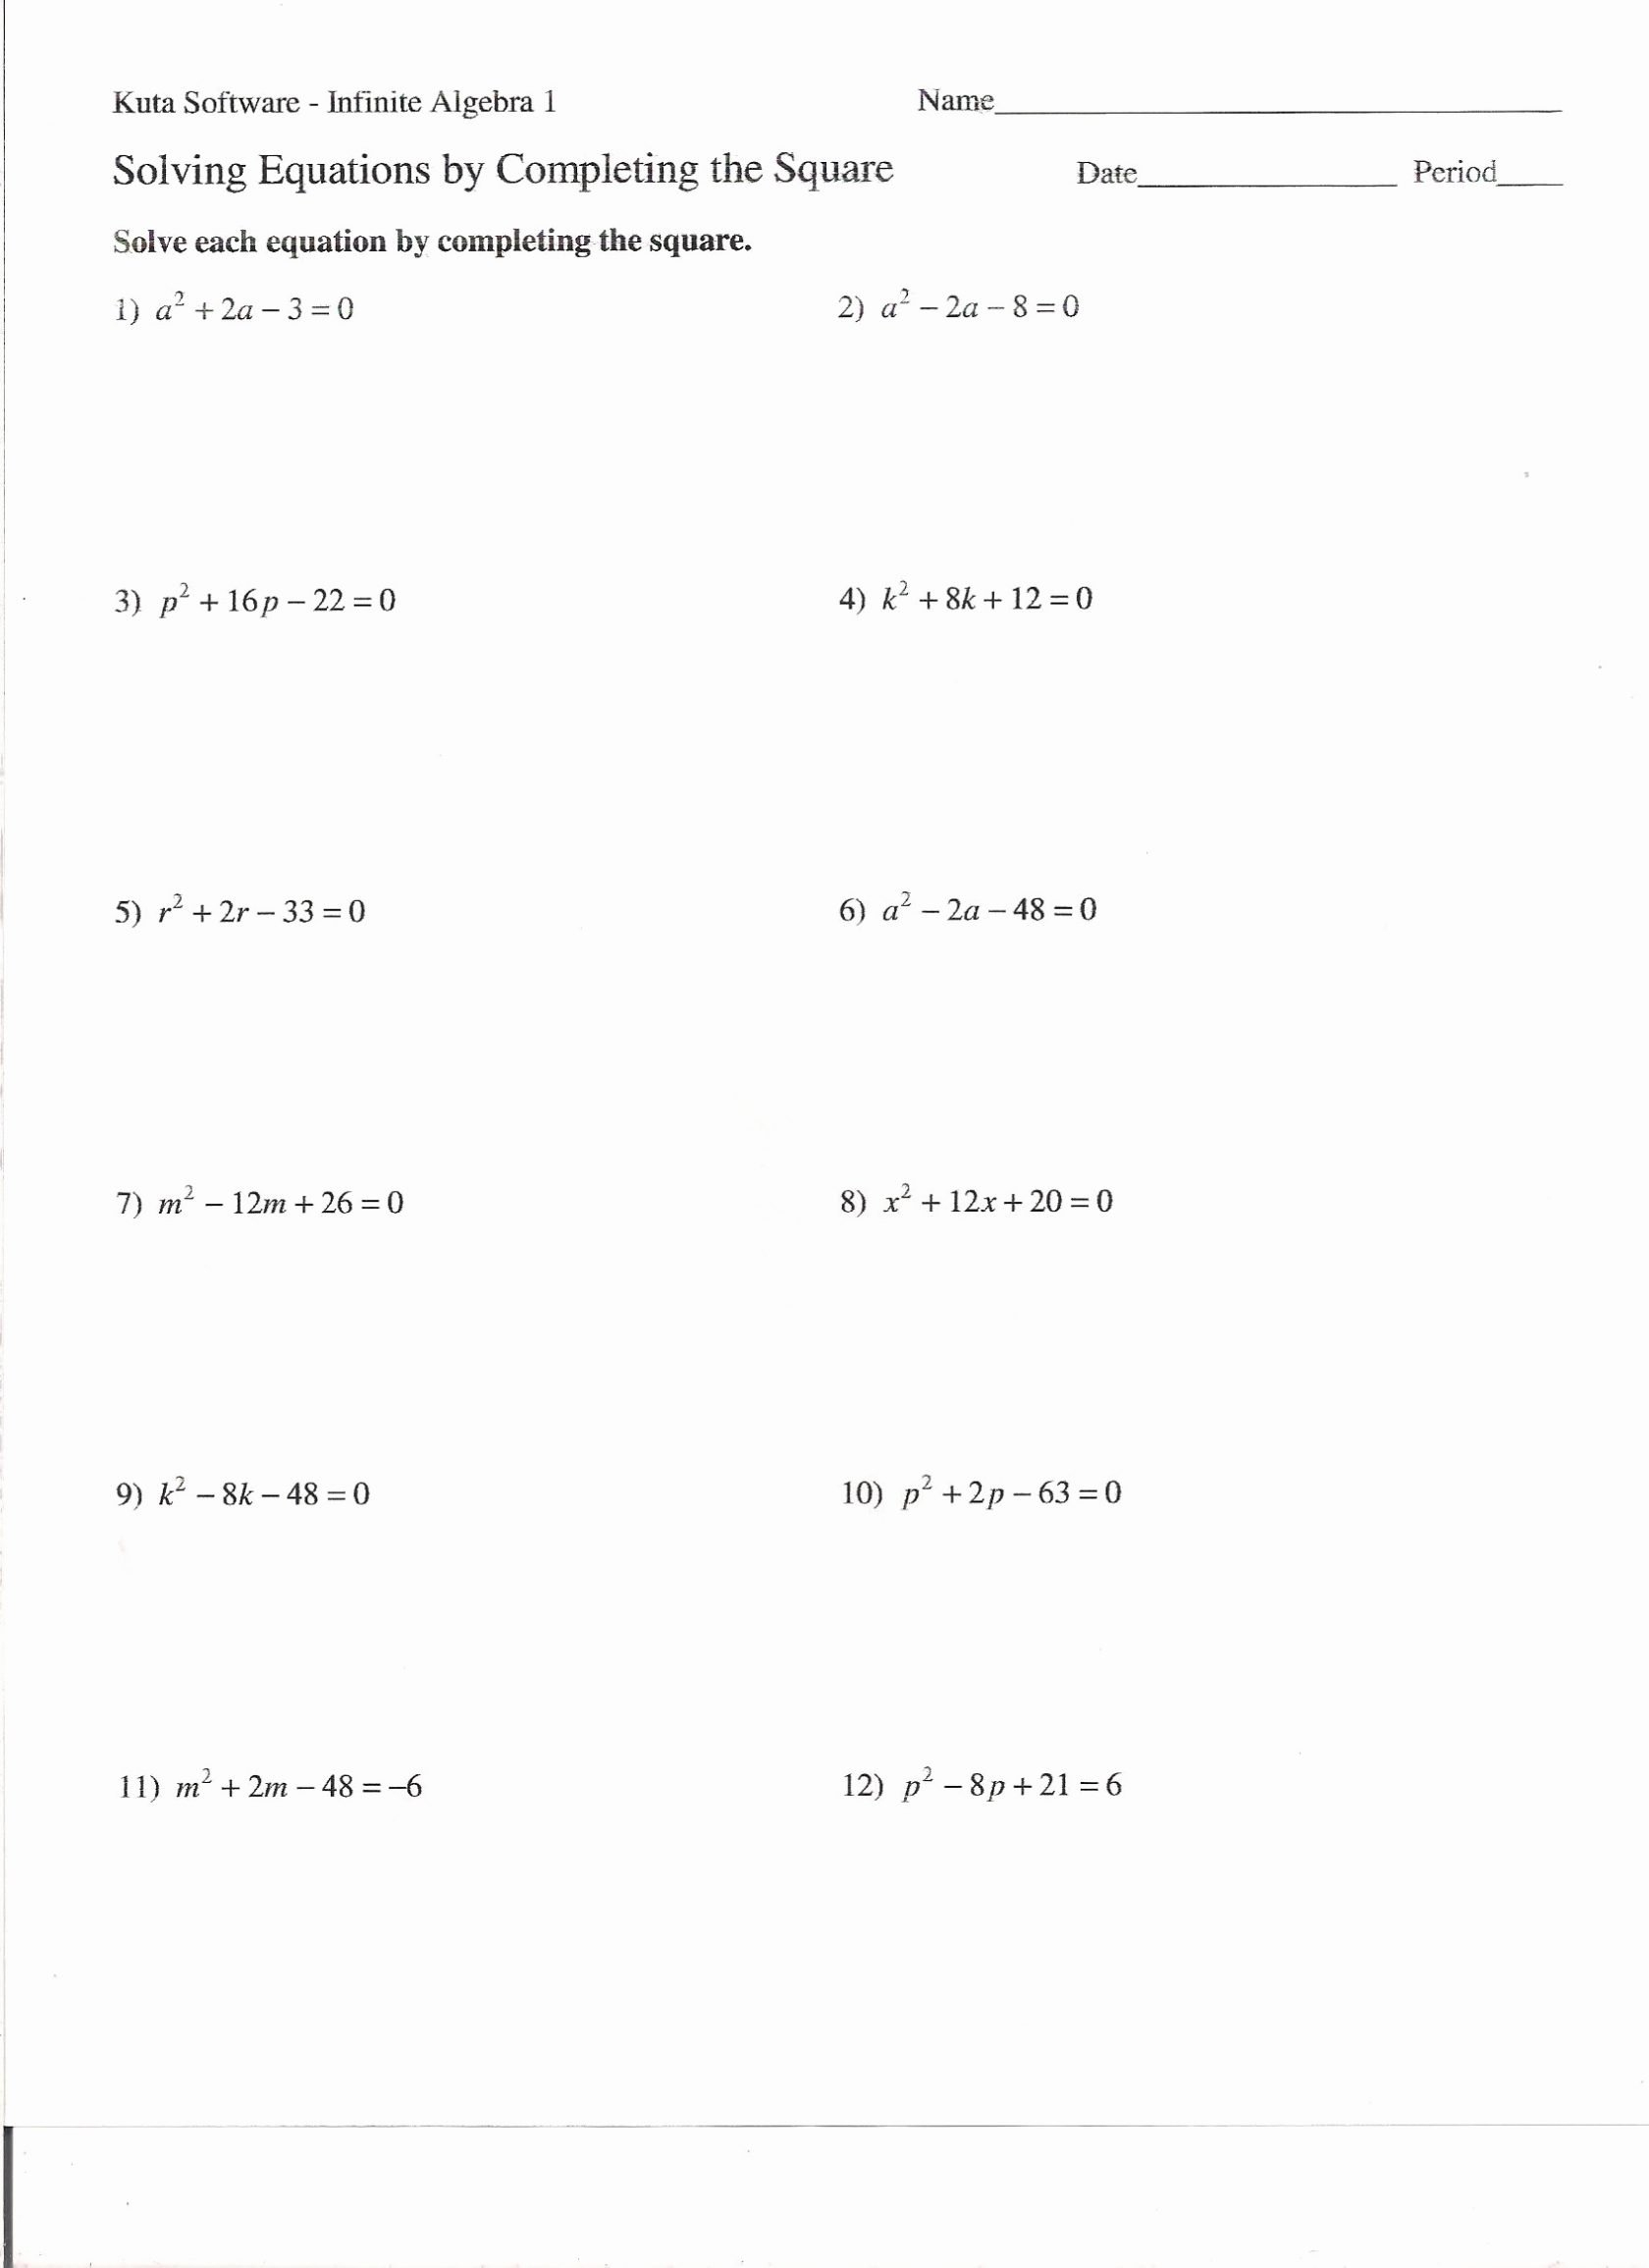 Distributive Property Worksheets 3Rd Grade  Yooob Throughout Distributive Property Worksheets 7Th Grade